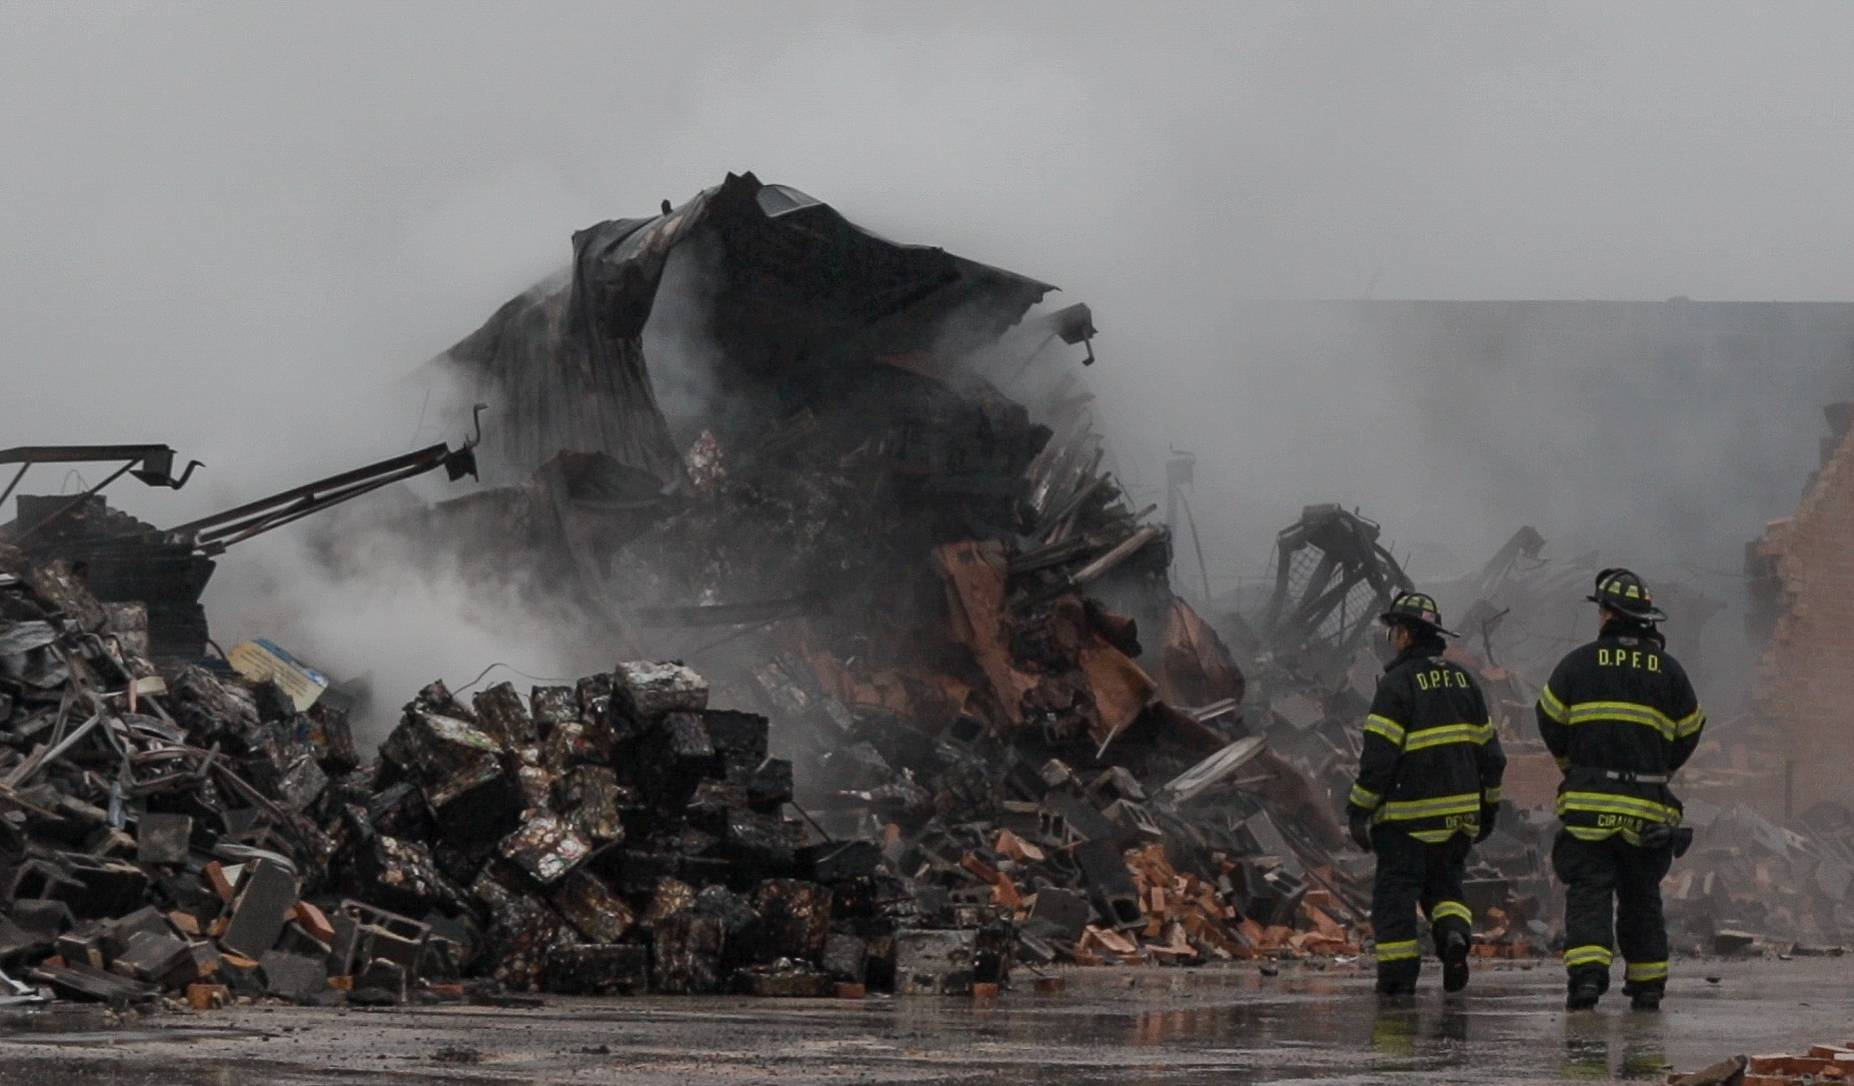 Firefighters spent much of the day Thursday on the scene of a massive fire that broke out late Wednesday night at Maine Scrap Metal on Rand Road in Des Plaines.